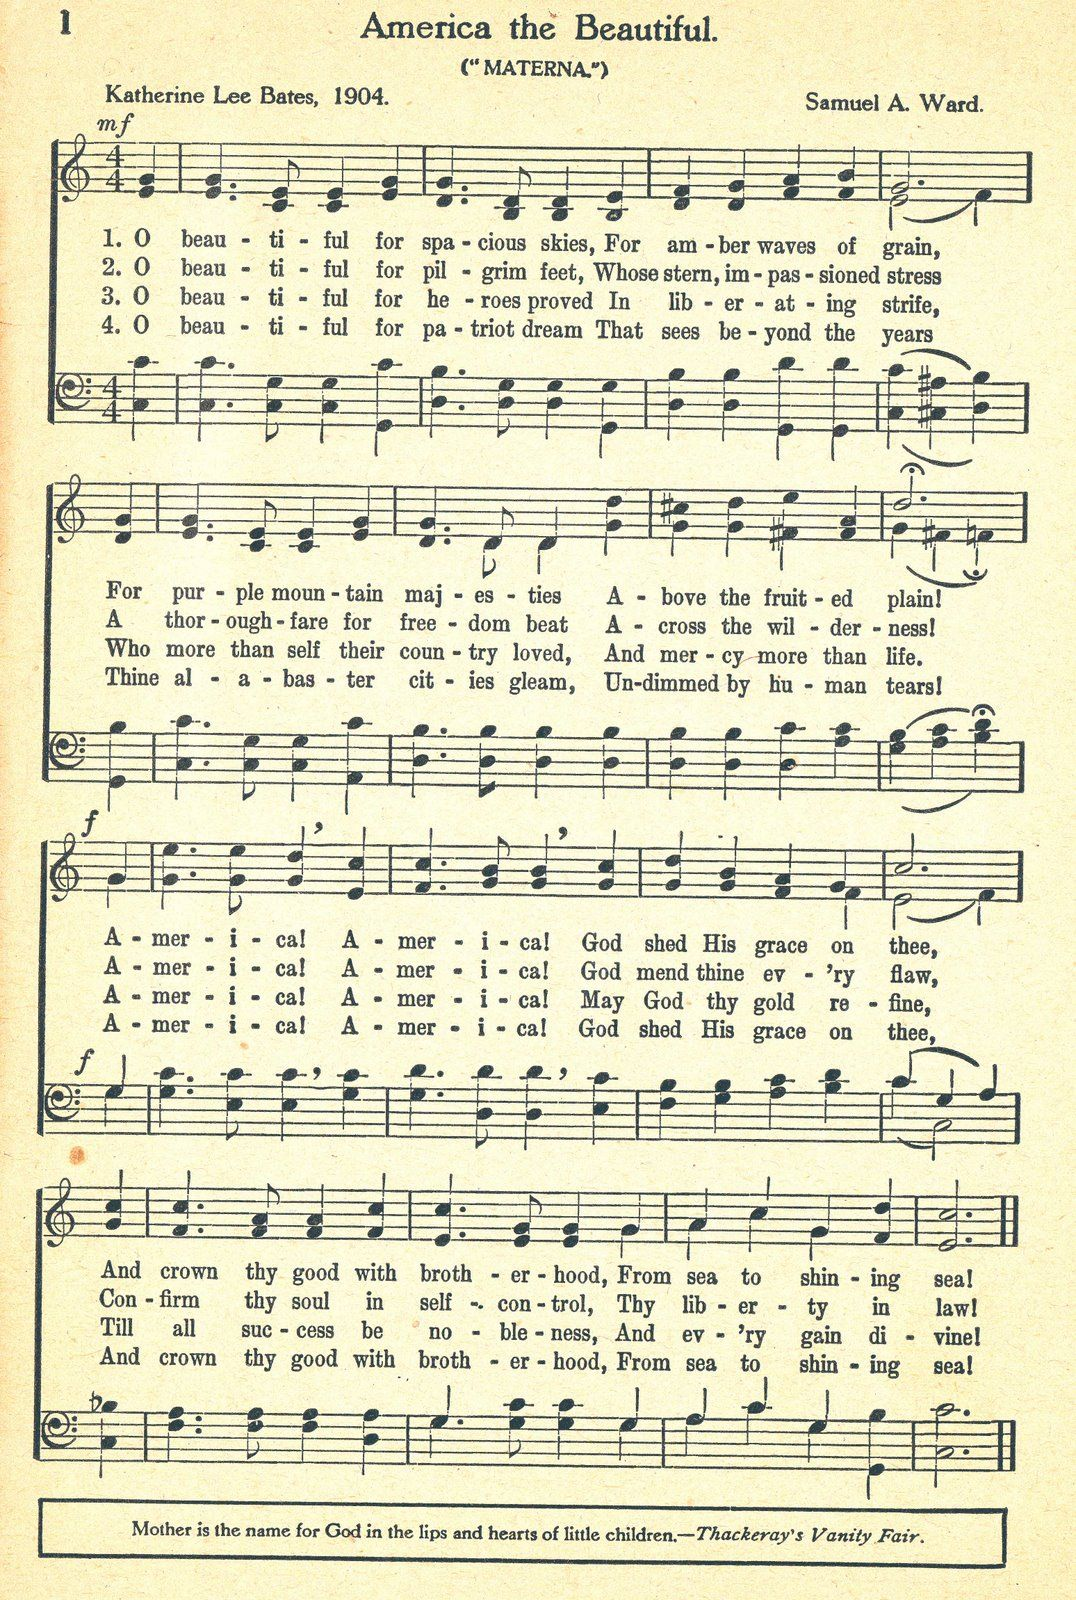 photo regarding Free Printable Sheet Music for the Sound of Music identify Pin through Gladys Utoft upon Tunes inside of 2019 Traditional sheet audio